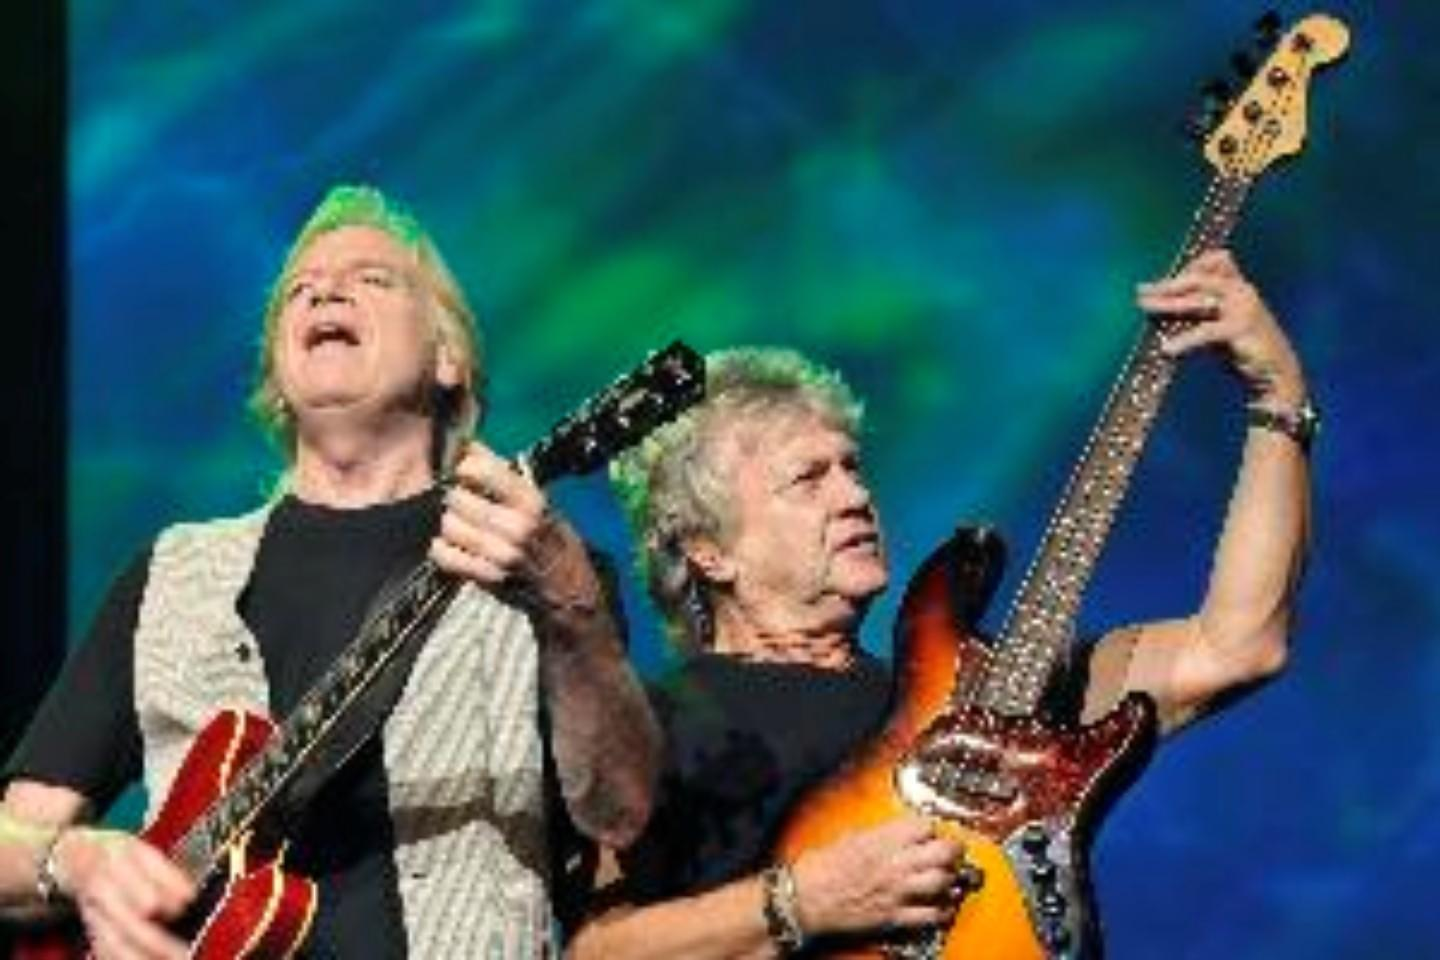 Moody Blues Tour 2020.The Moody Blues Tickets Tour Dates 2019 Concerts Songkick